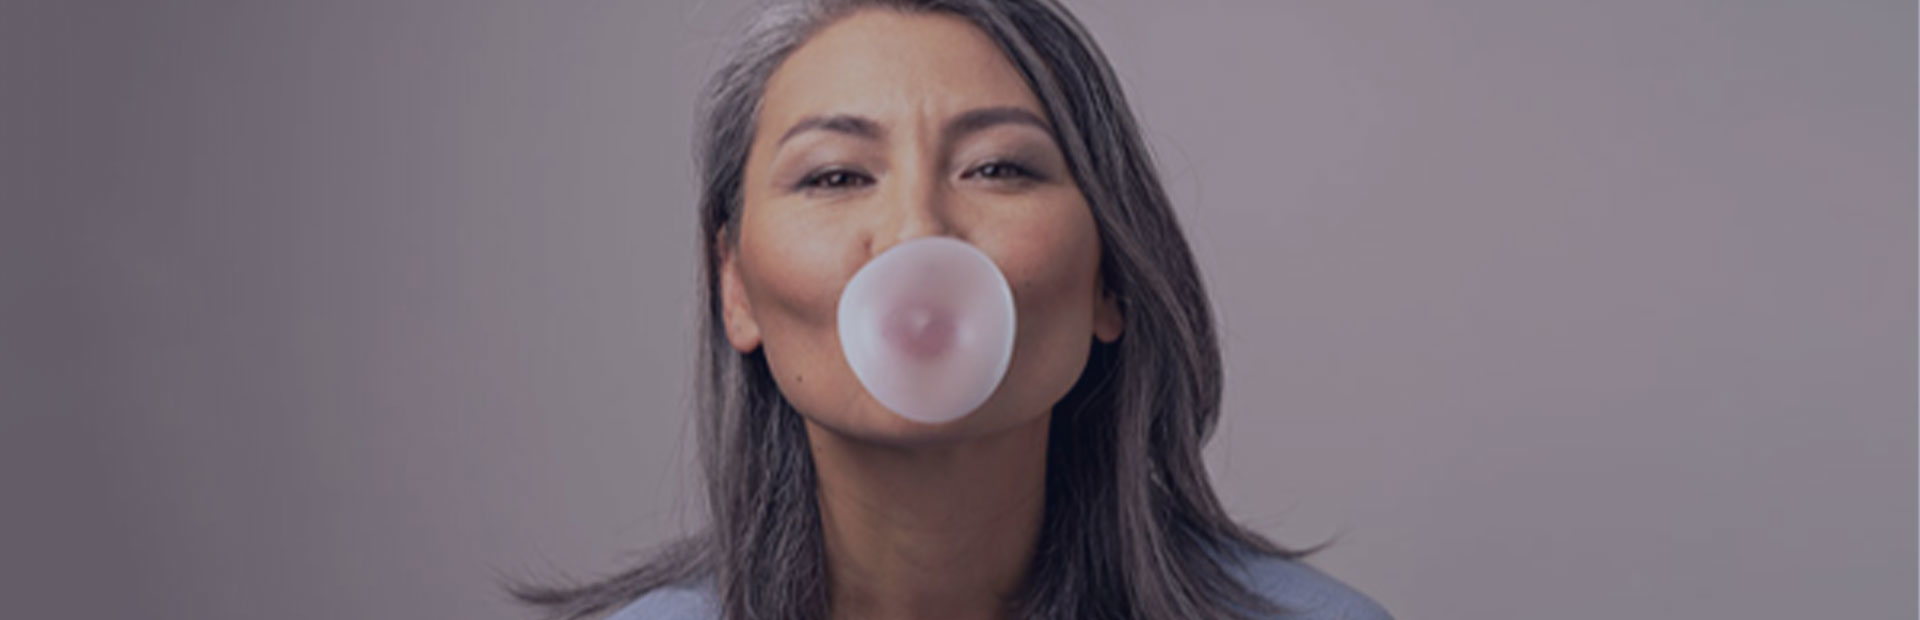 A woman in her 50s blows some bubble gum, as she knows she can still chew gum with dentures while using Fixodent.